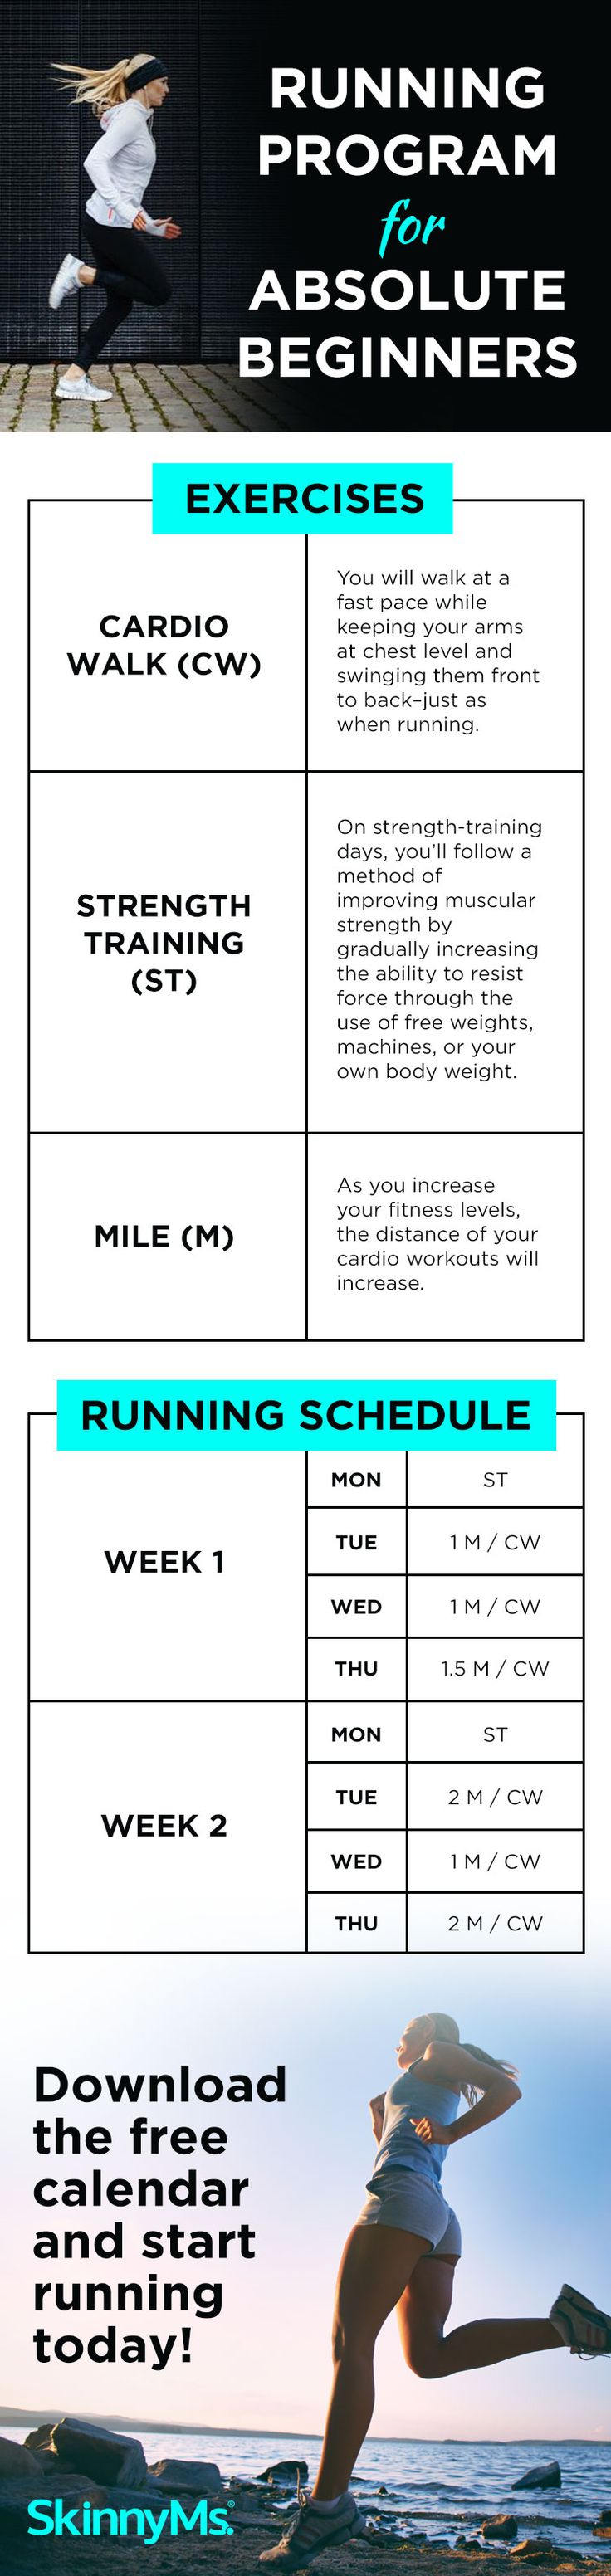 2018 is the finally the year you become a better runner! Start training today with our FREE downloadable running program! | Running Program for Absolute Beginners